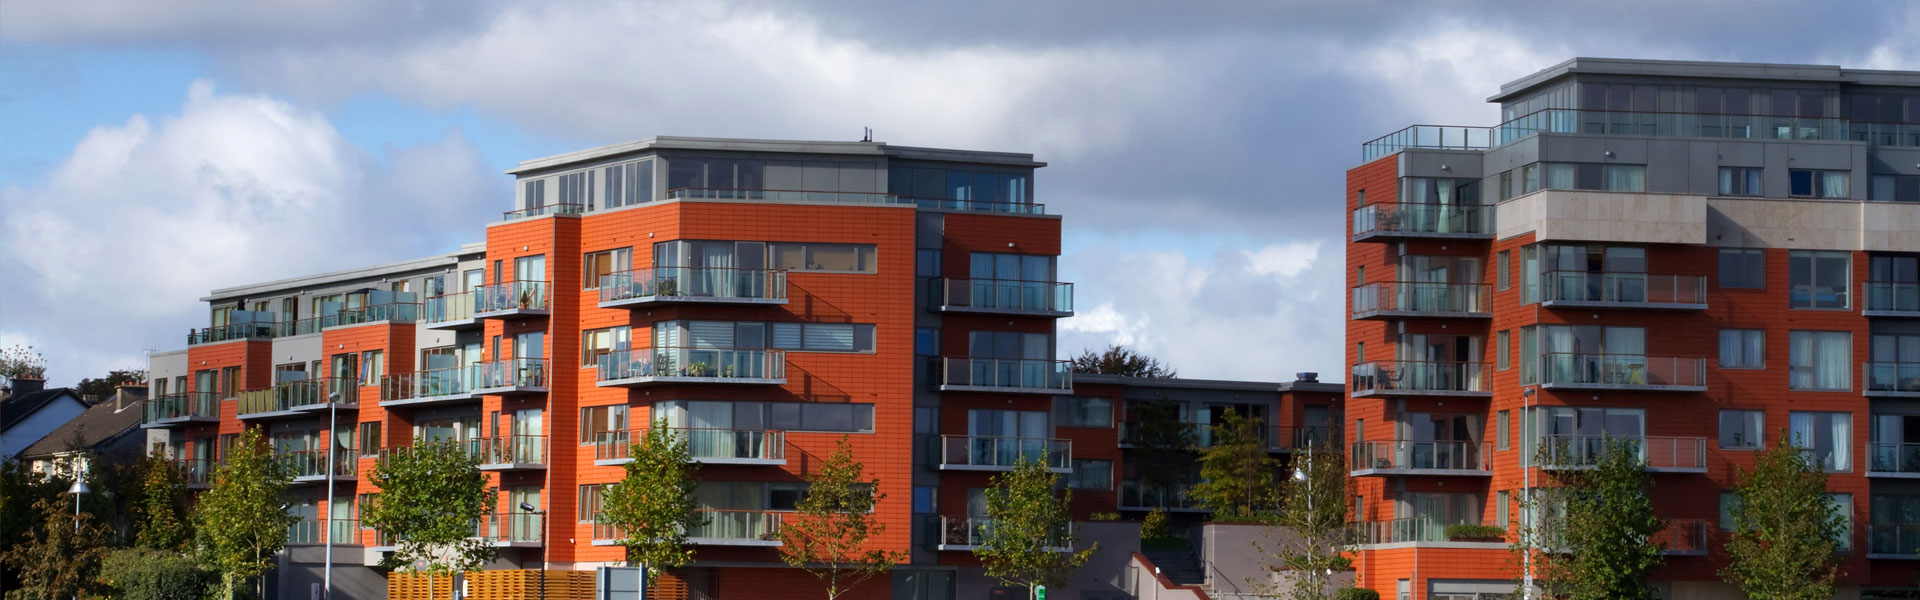 professional Commercial property management in Kiltegan